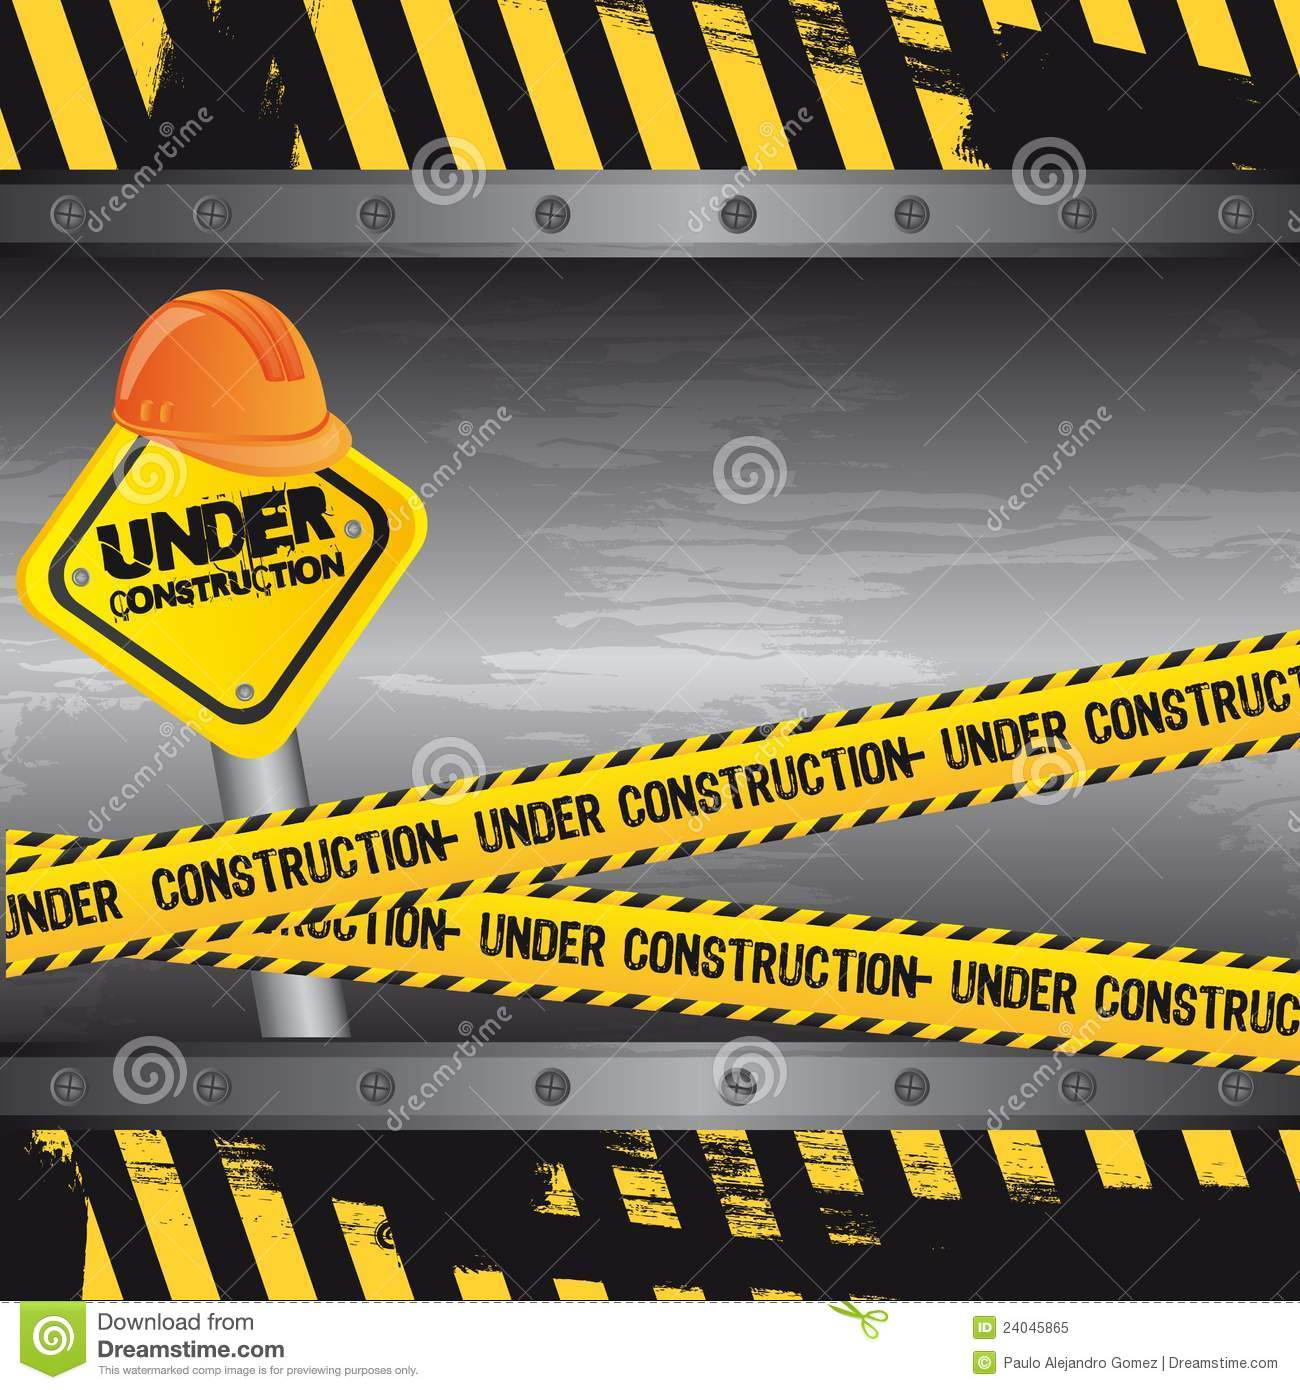 Under Construction Background Royalty Free Stock Photo ...